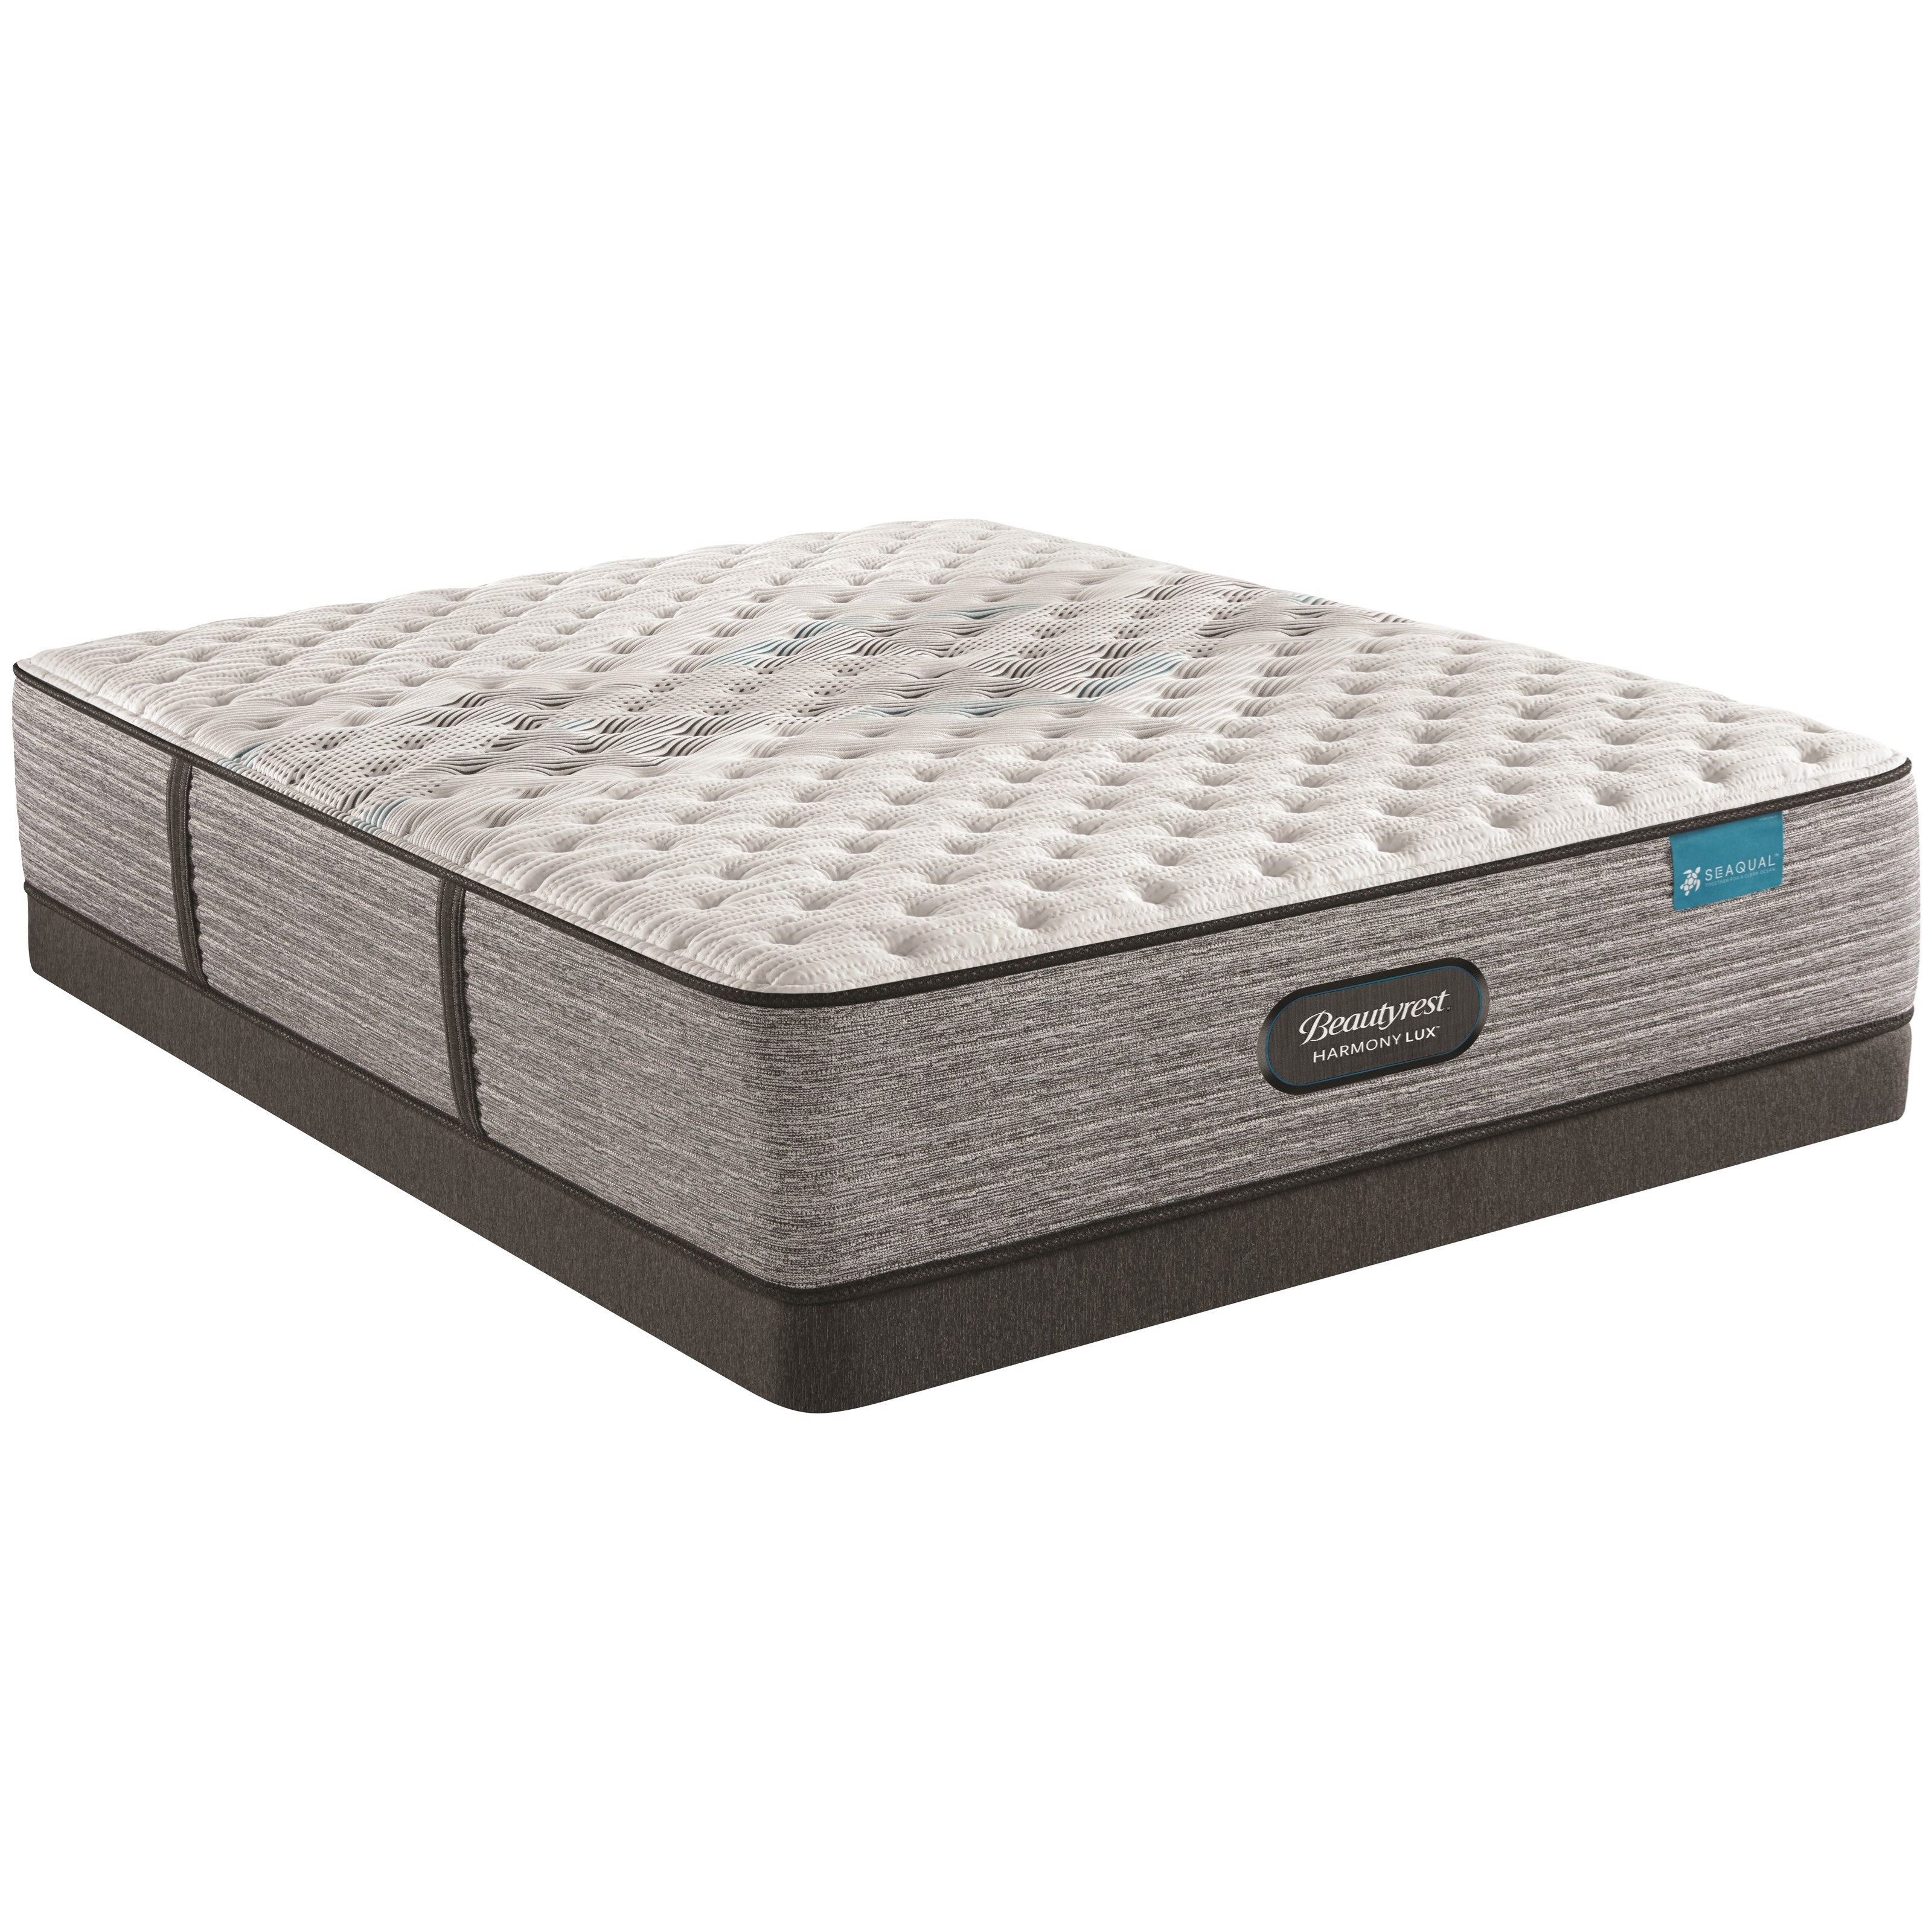 "Carbon Series Extra Firm TT Twin 13 1/2"" Extra Firm LP Set by Beautyrest at Morris Home"